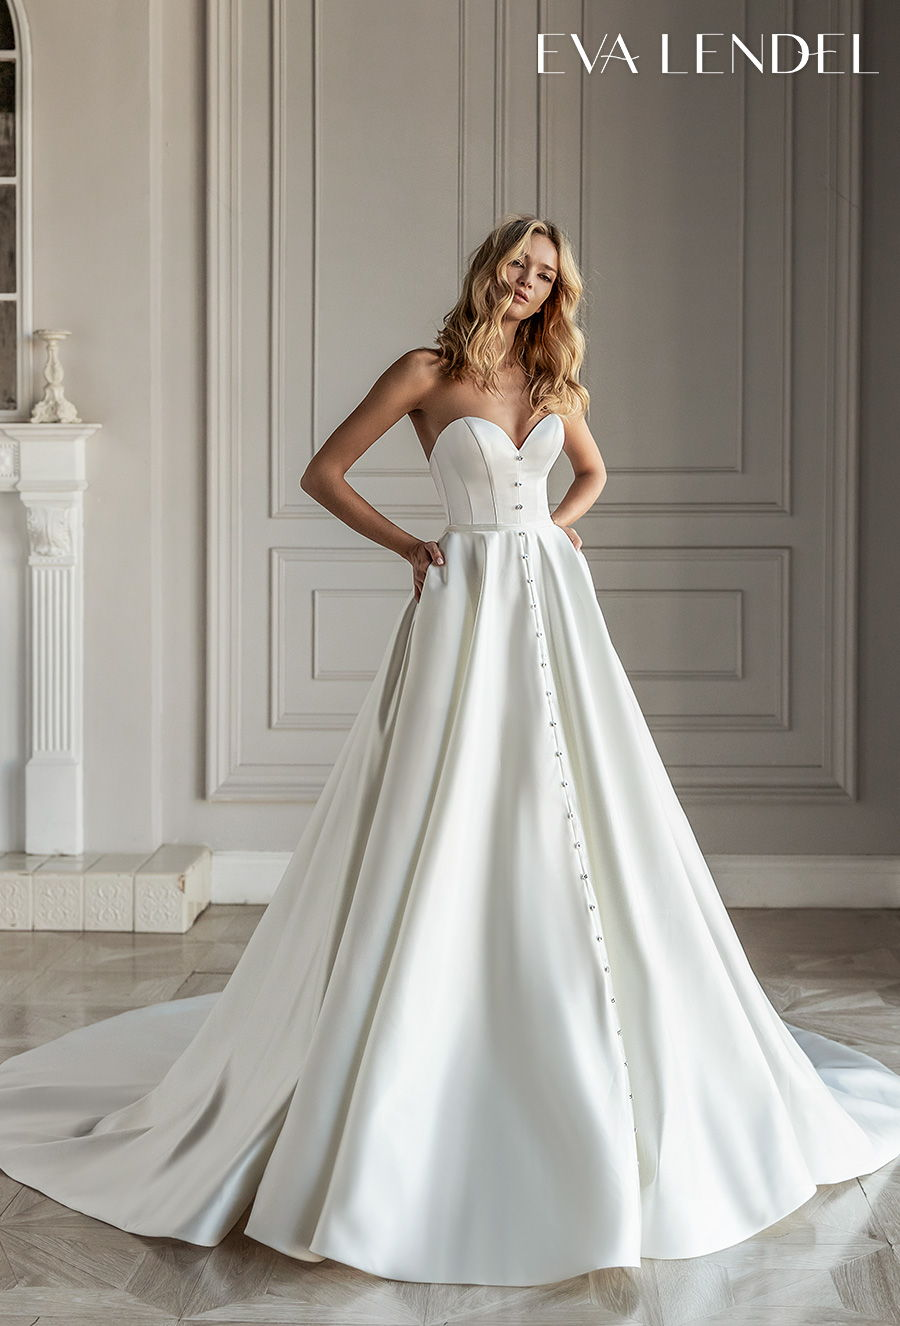 eva lendel 2021 bridal strapless sweetheart neckline simple button front romantic a  line wedding dress with pockets mid back royal train (diora) mv